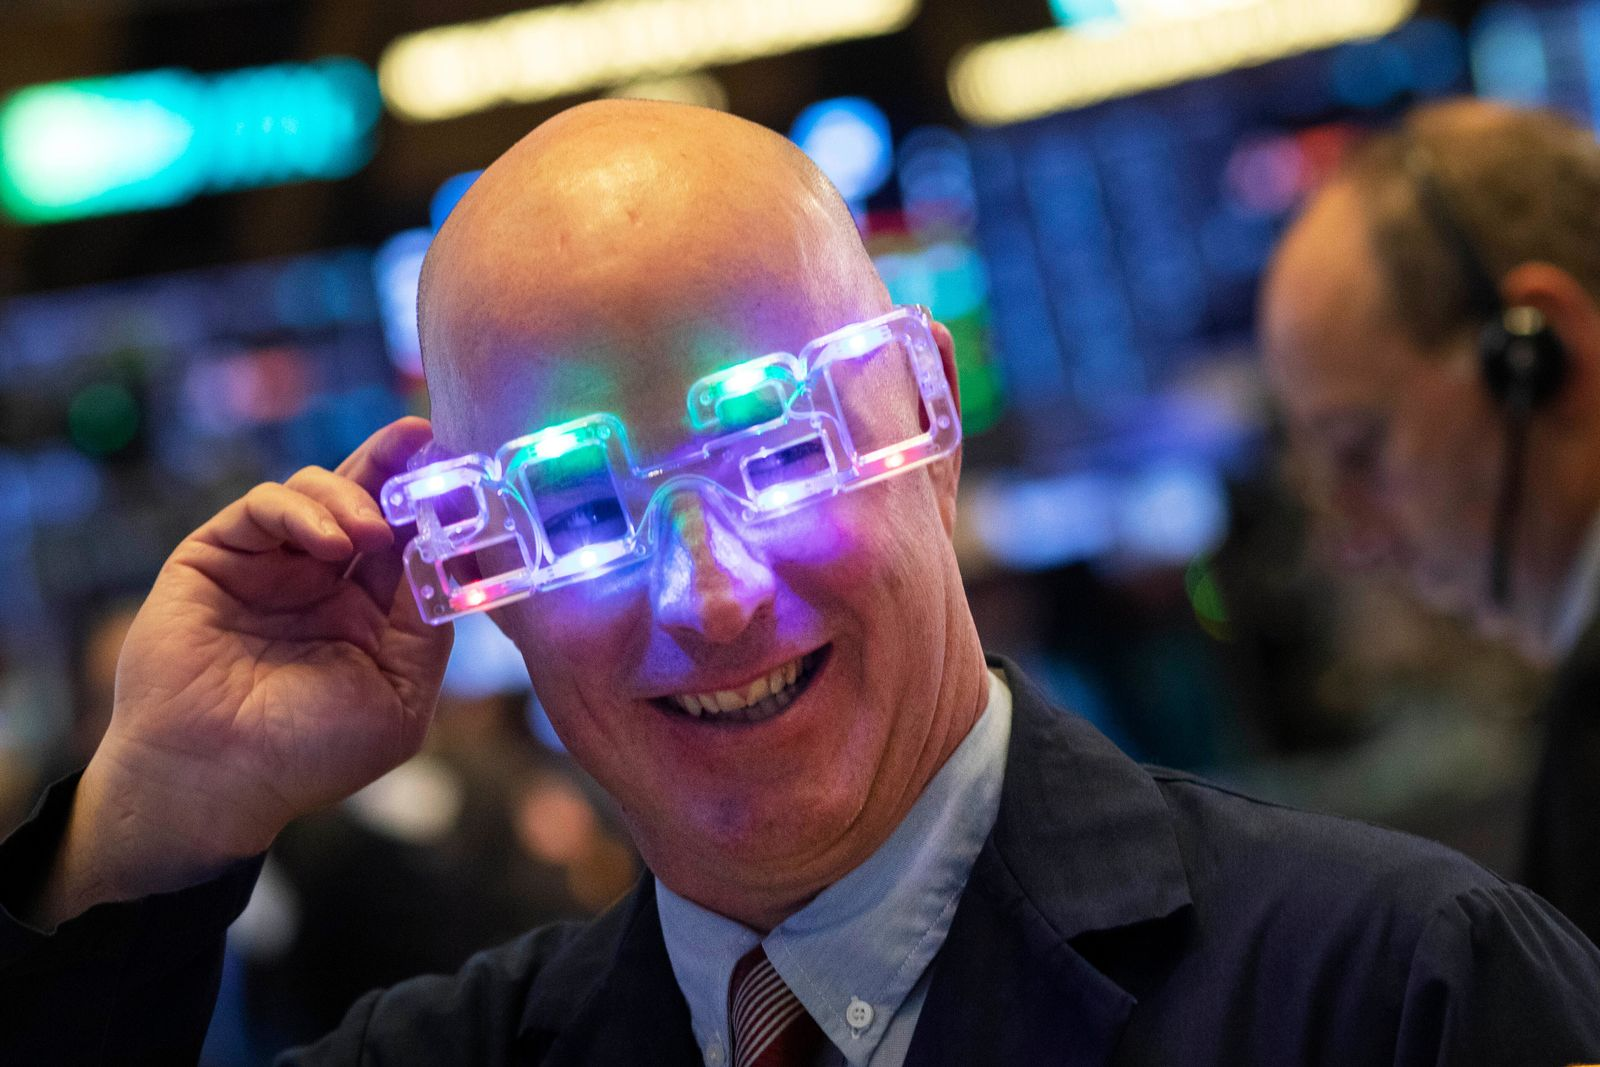 Stock trader John O'Hara tries on his New Year's 2020 party glasses at New York Stock Exchange, Tuesday, Dec. 31, 2019. Stocks slipped globally in quiet New Year's Eve trading Tuesday with many markets closed. Wall Street could close 2019 with back-to-back daily losses in a year that the U.S. posted the largest market gains since 2013. (AP Photo/Mark Lennihan)